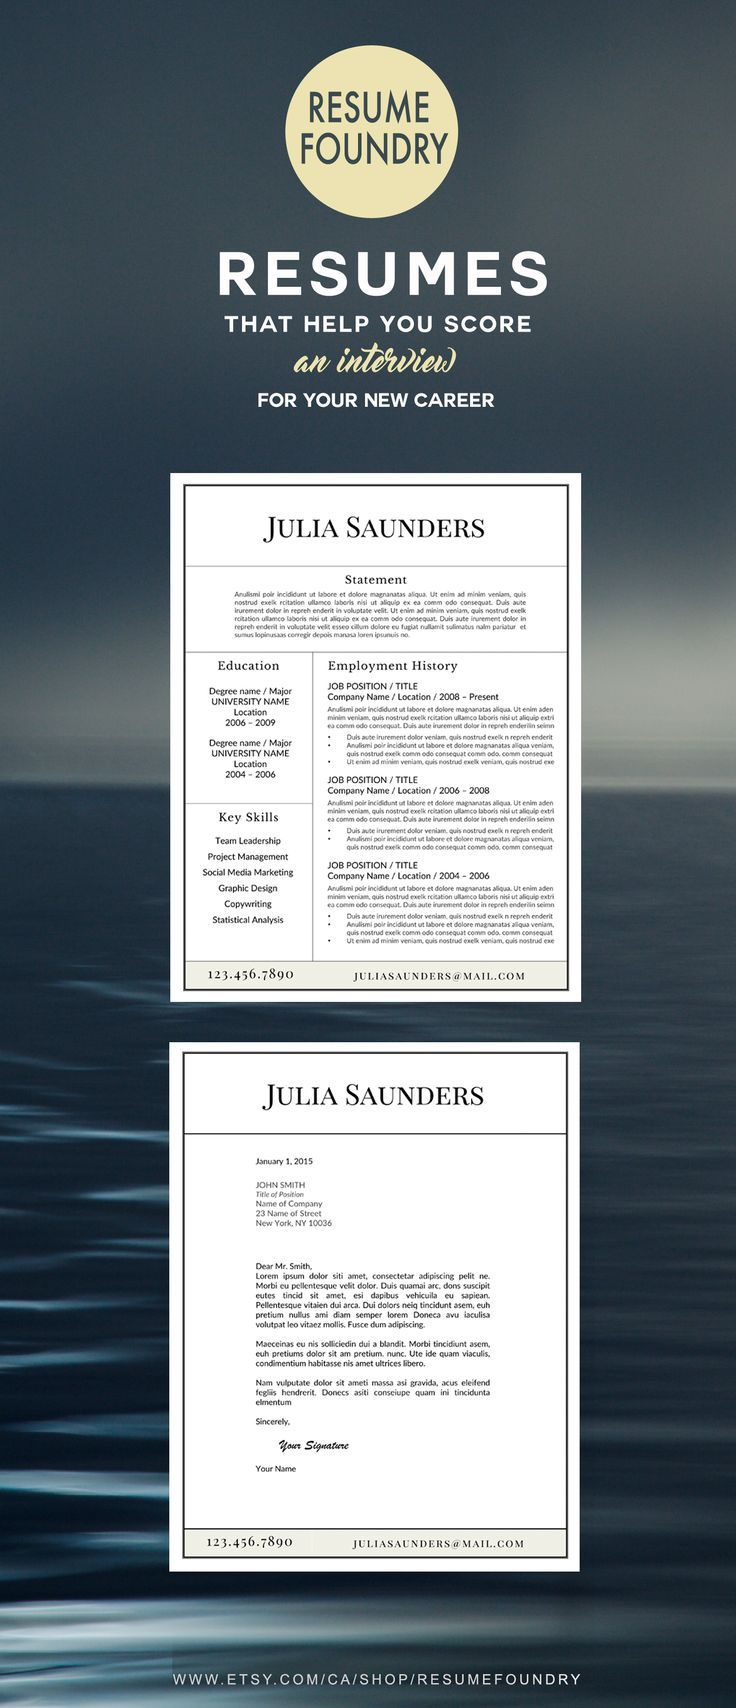 simple yet stylish resume template ready for your career details use with microsoft word